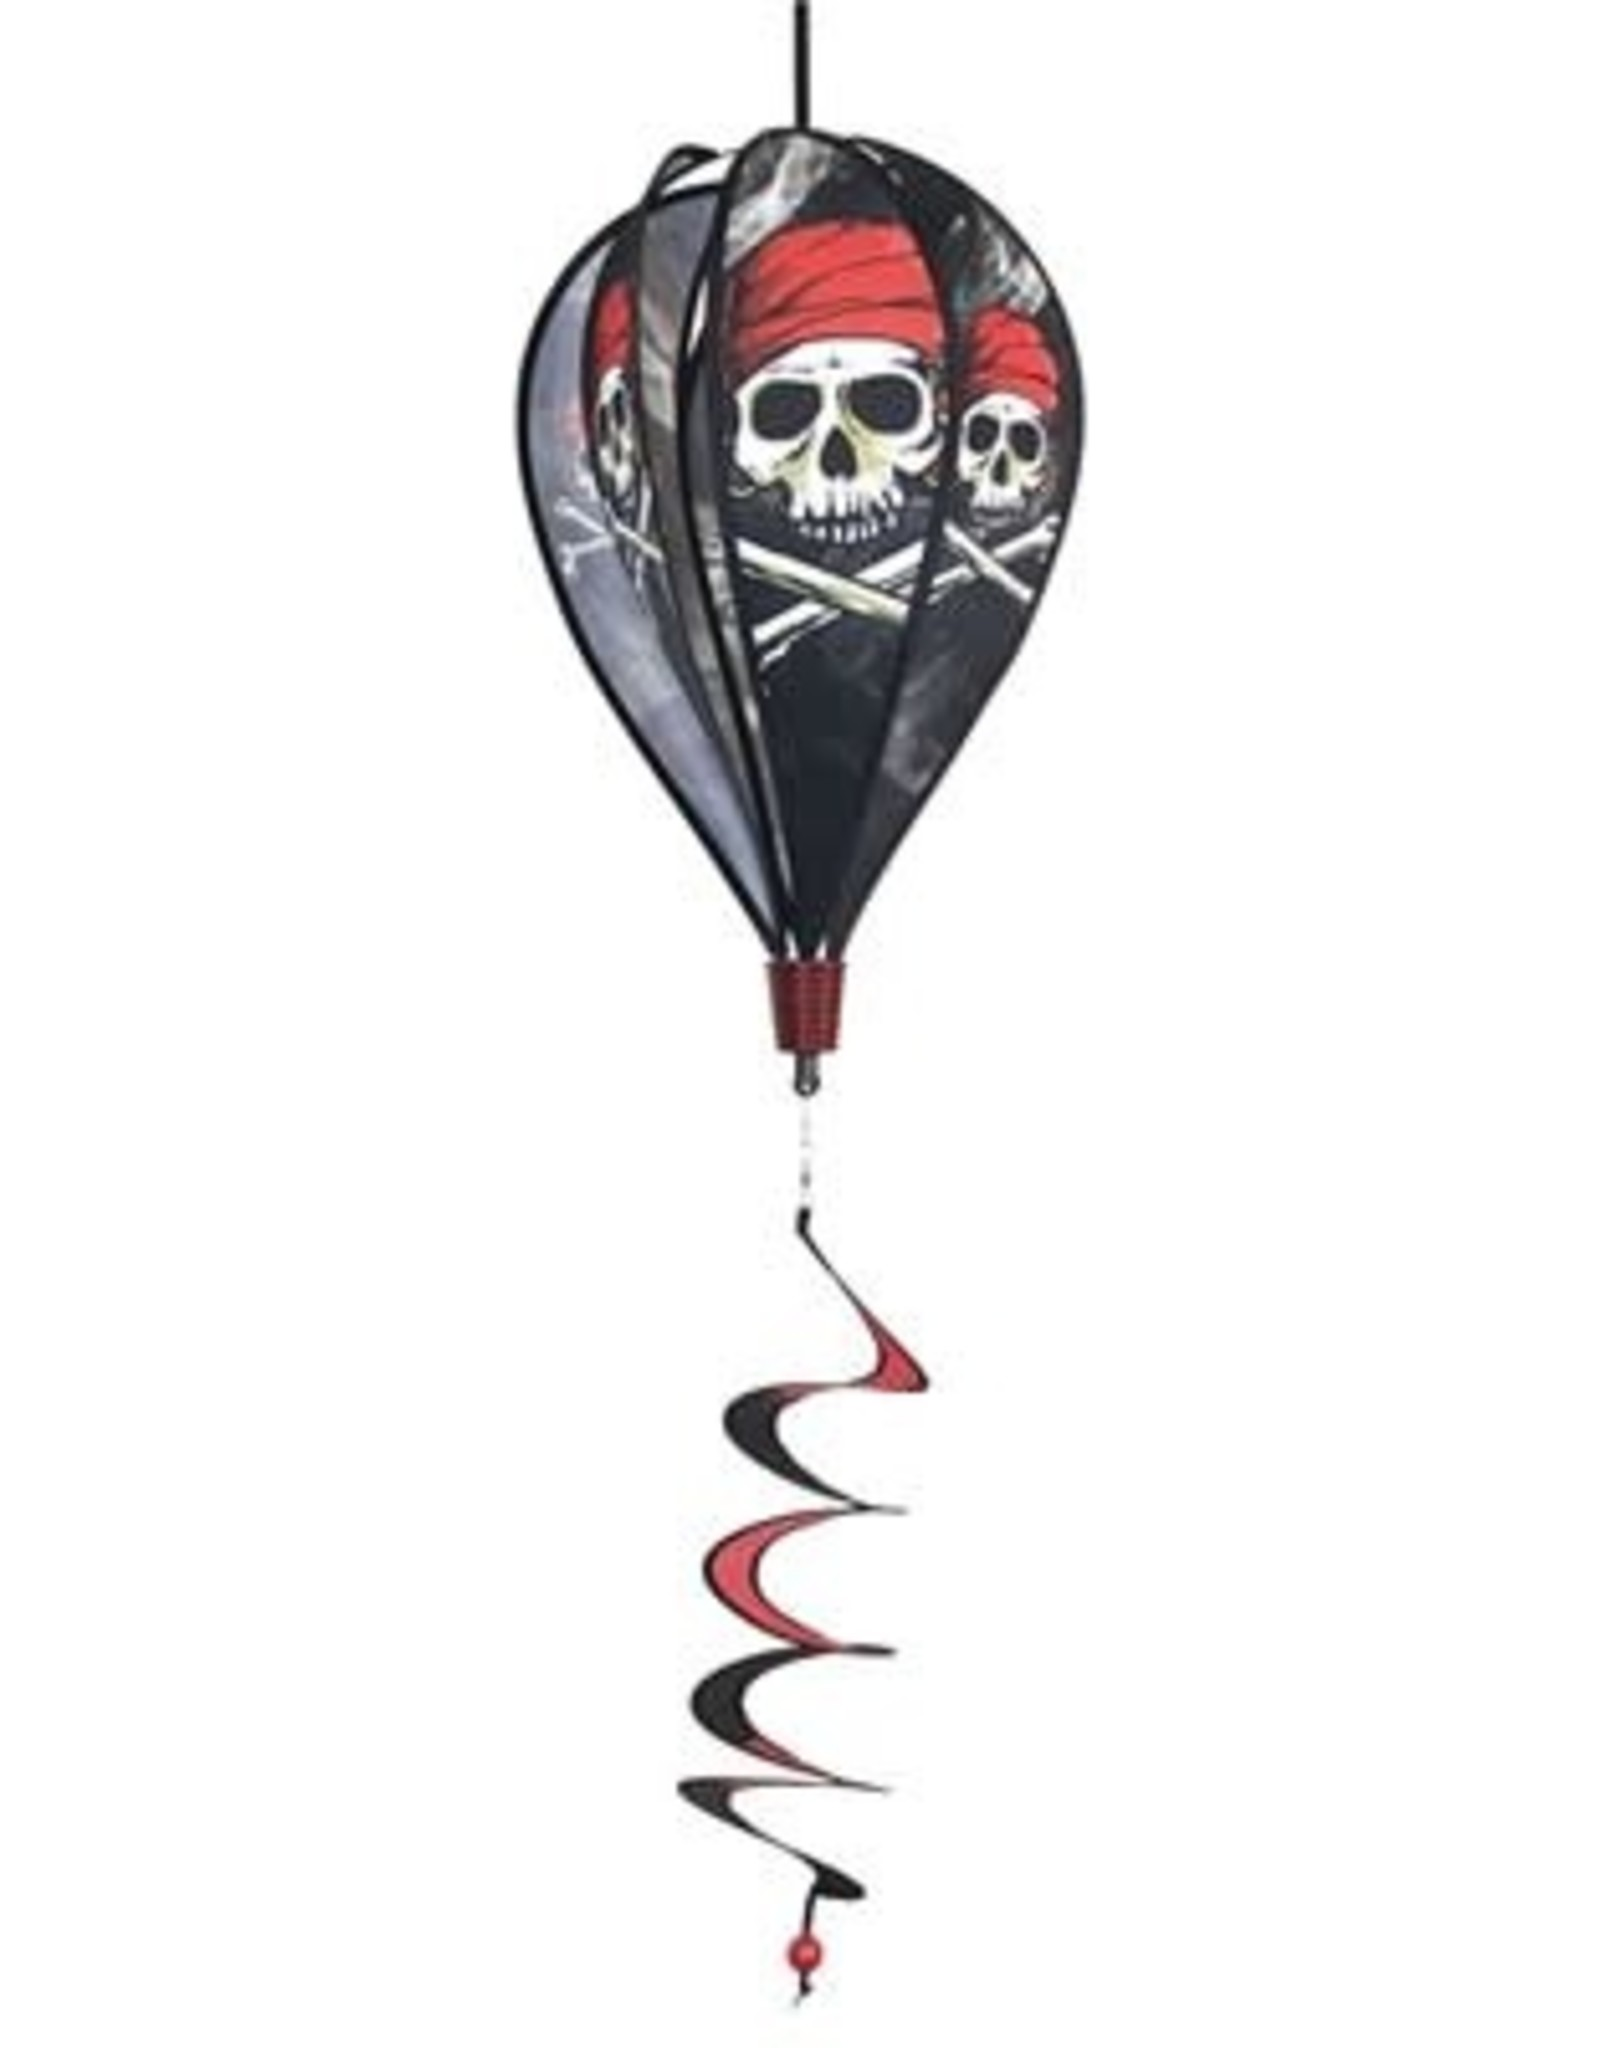 In The Breeze Hot Air Balloon Pirate